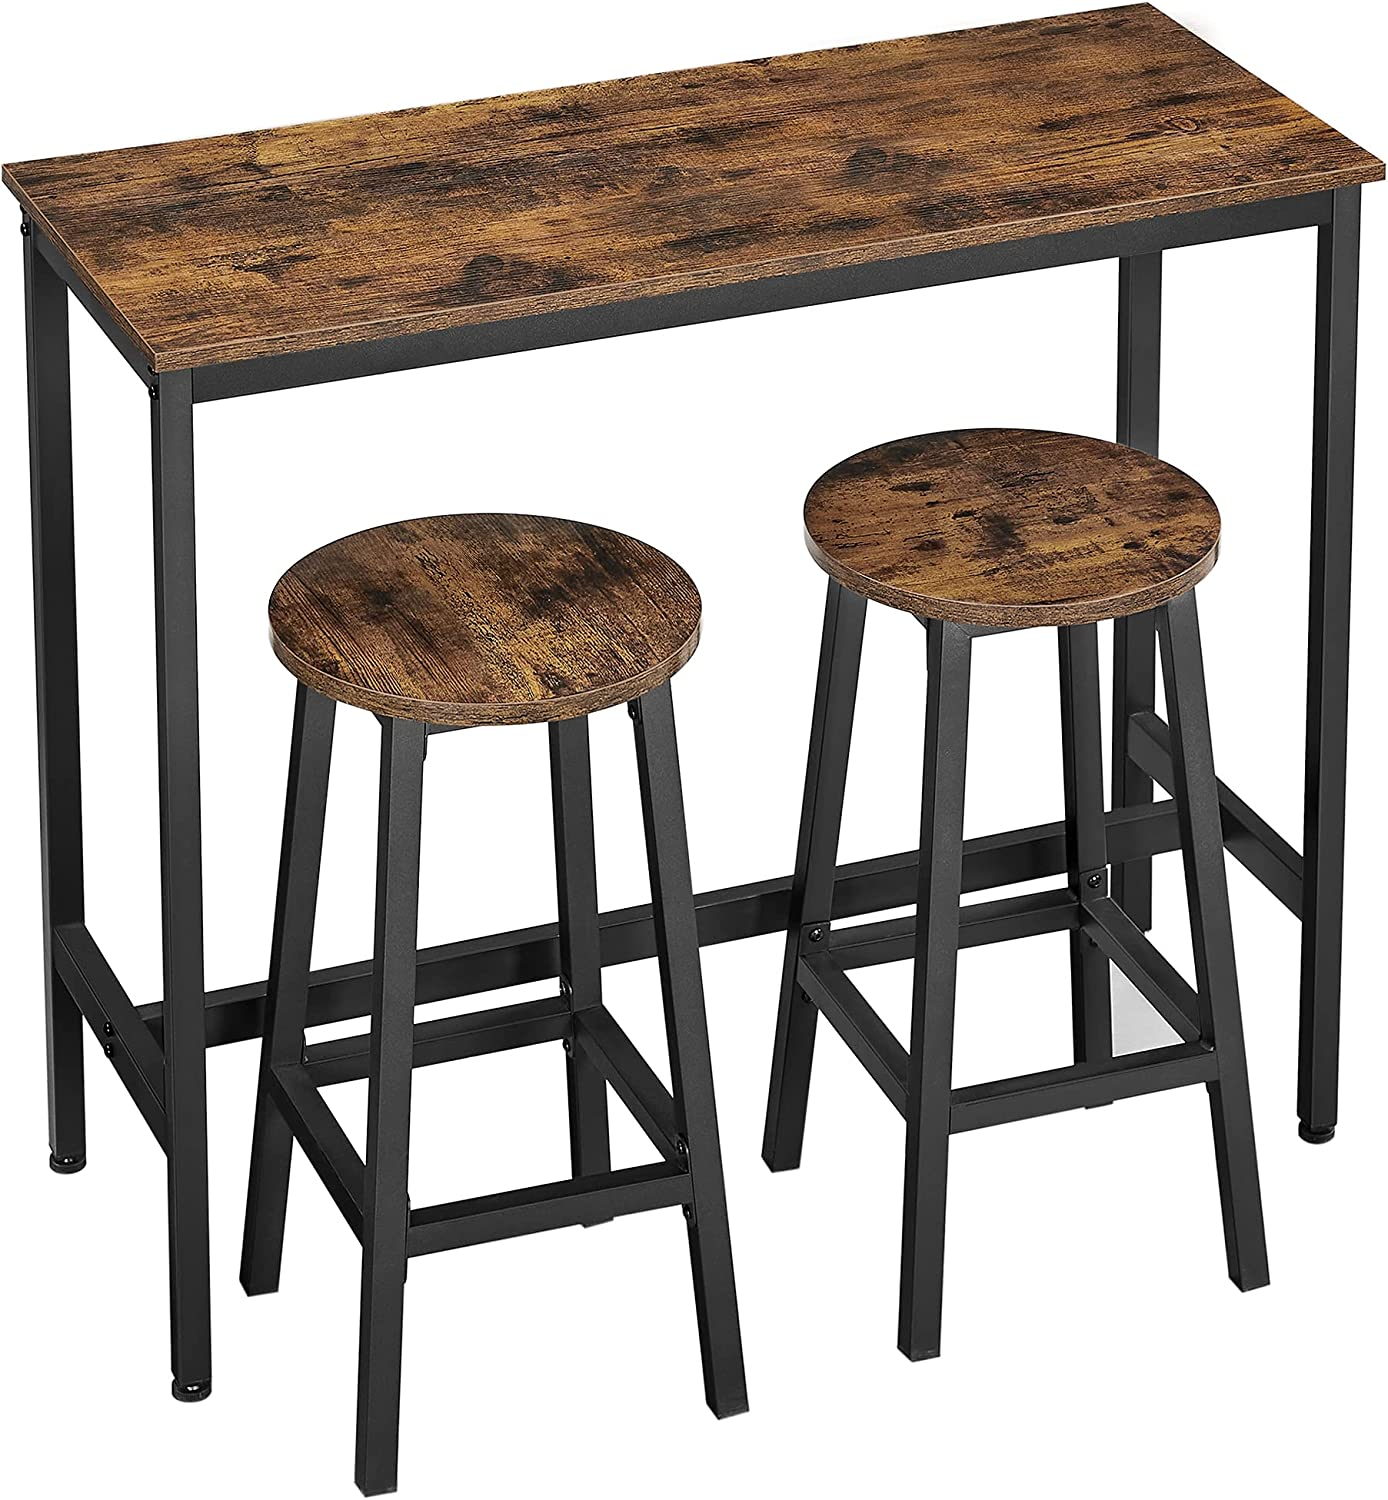 Buy VASAGLE Bar Table and Chairs Set, Kitchen Bar Table with Bar ...